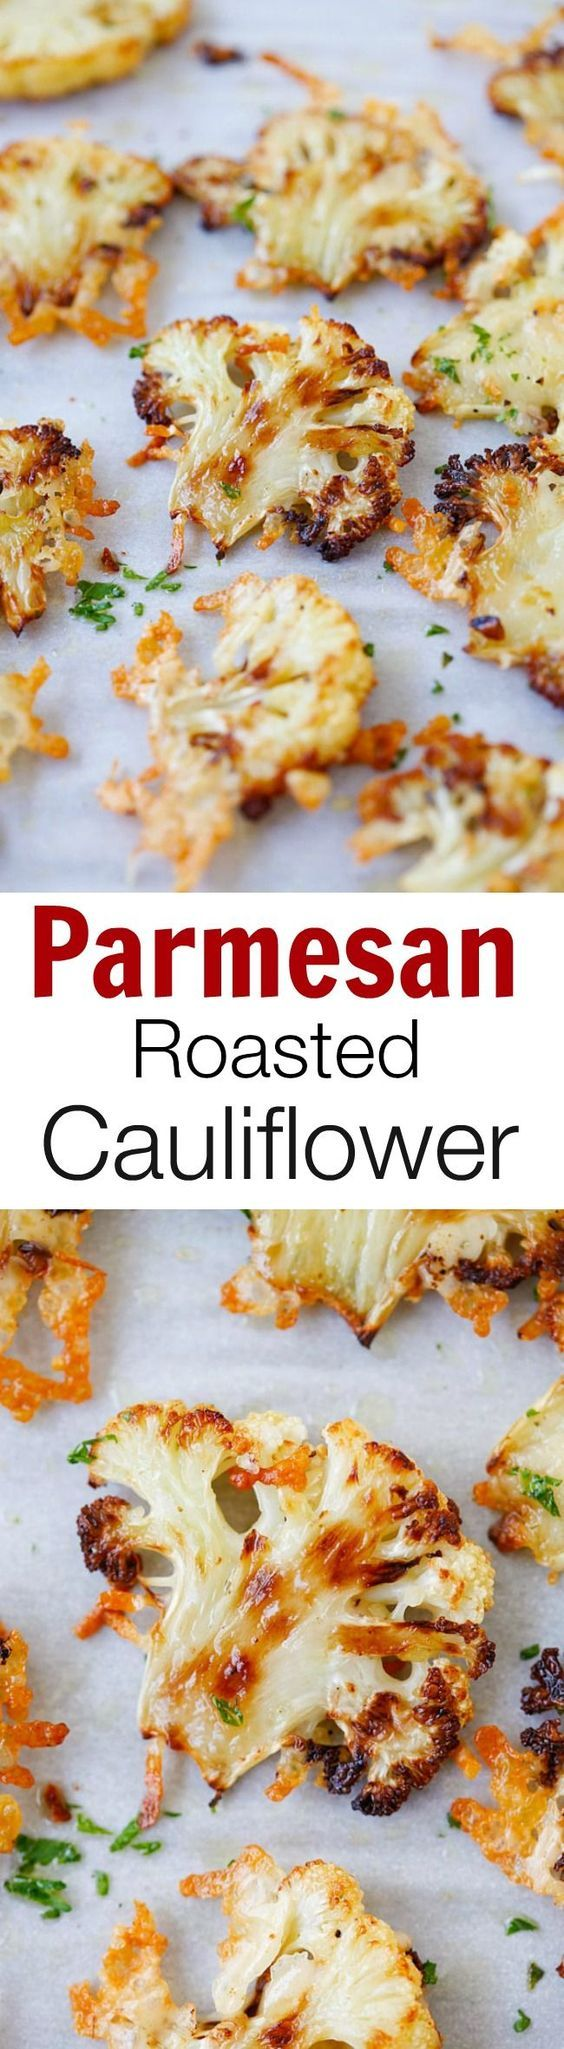 Parmesan roasted cauliflower - easiest and best roasted vegetable ever. Slice…